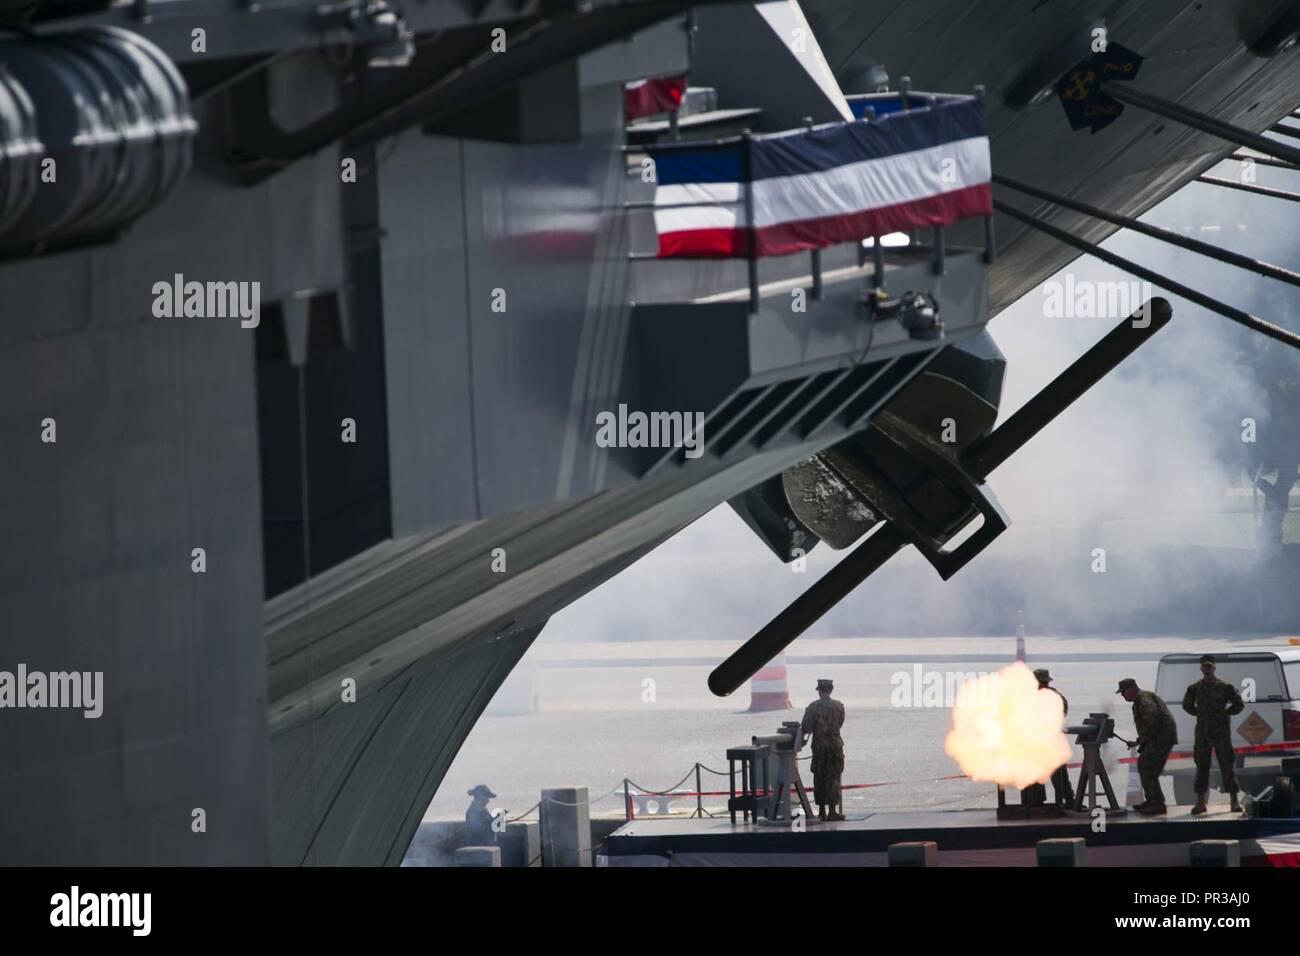 NORFOLK, Va. (July 22, 2017) -- Marines fire off a 21-gun salute to give honors to President Donald J. Trump during Ford's commissioning ceremony. Ford is the lead ship of the Ford-class aircraft carriers, and the first new U.S. aircraft carrier design in 40 years. - Stock Image